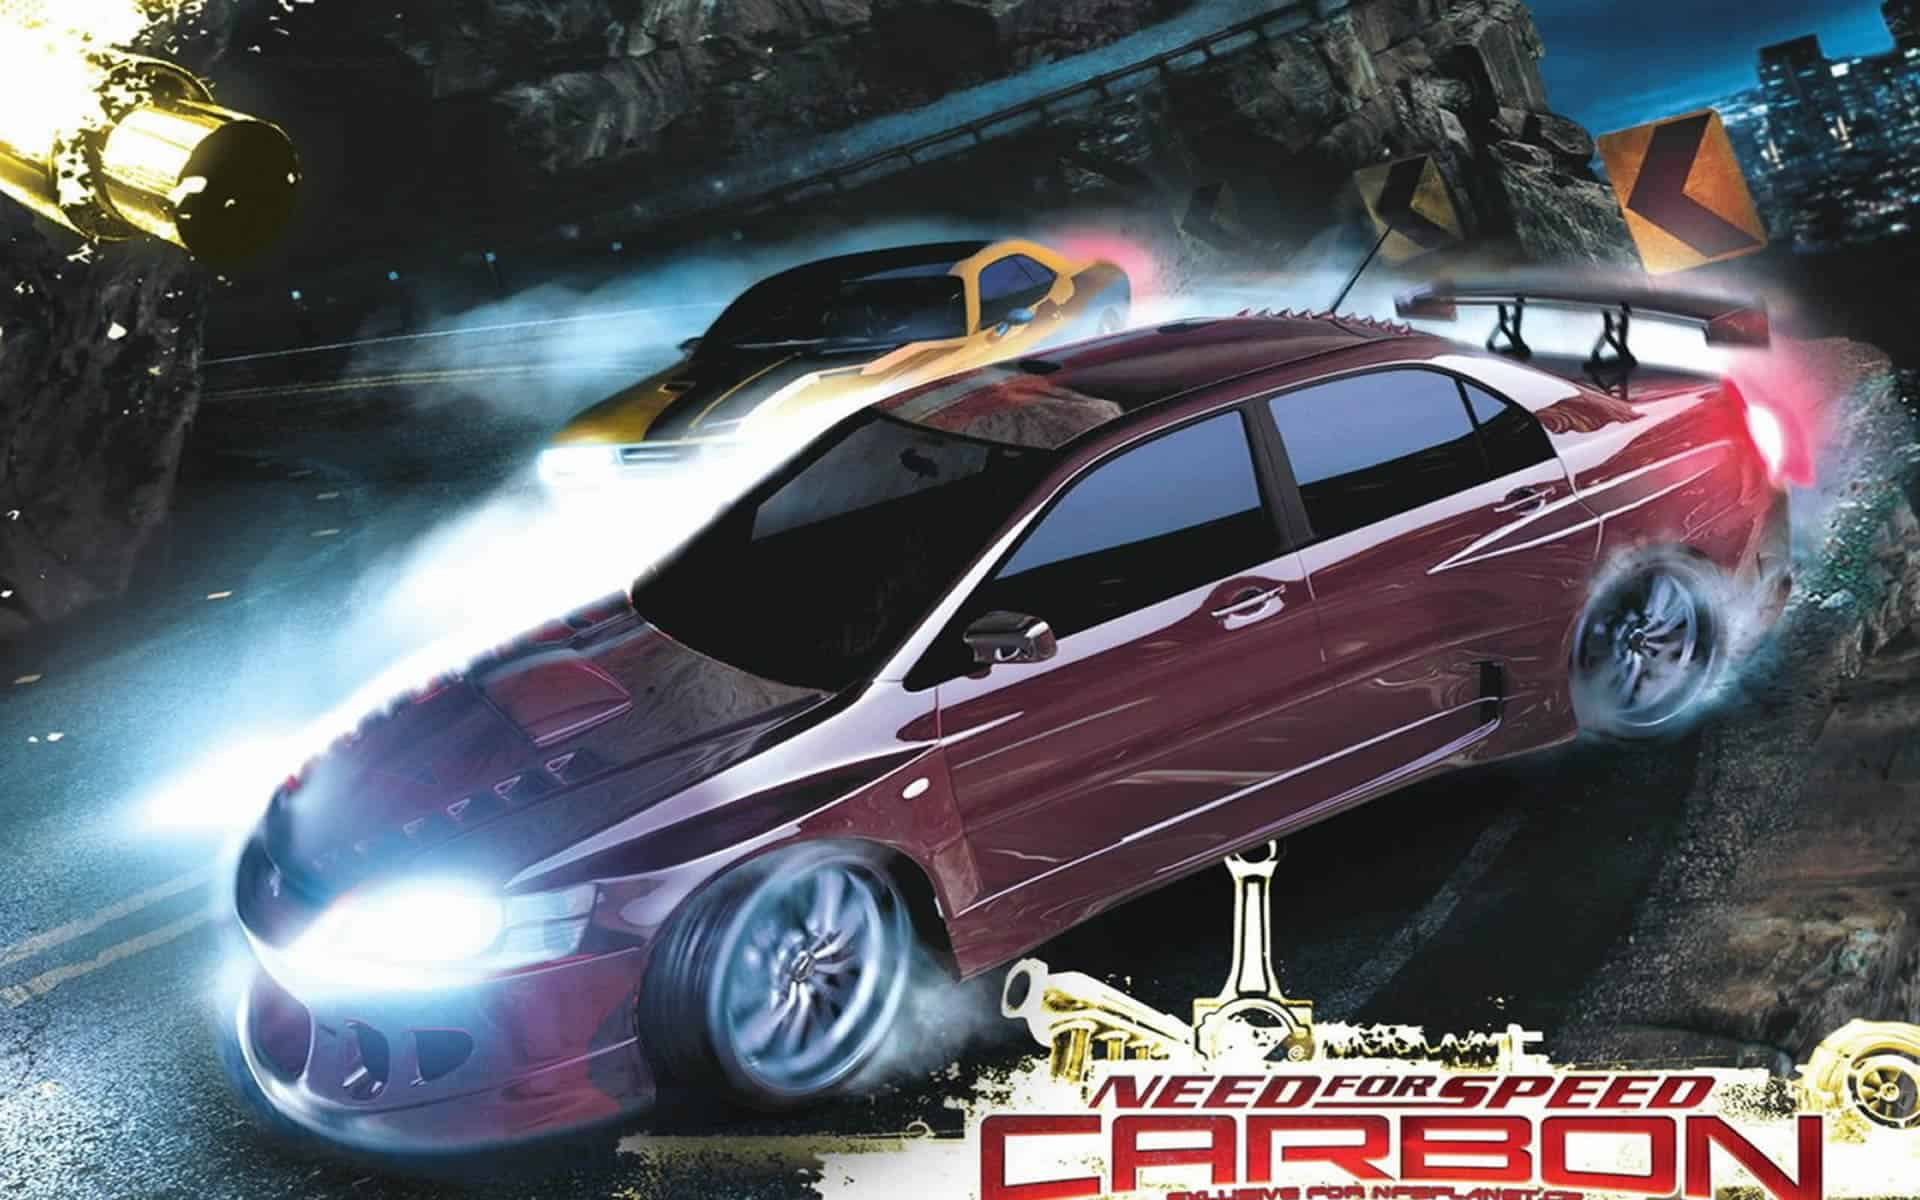 tarif: need for speed carbon [23]